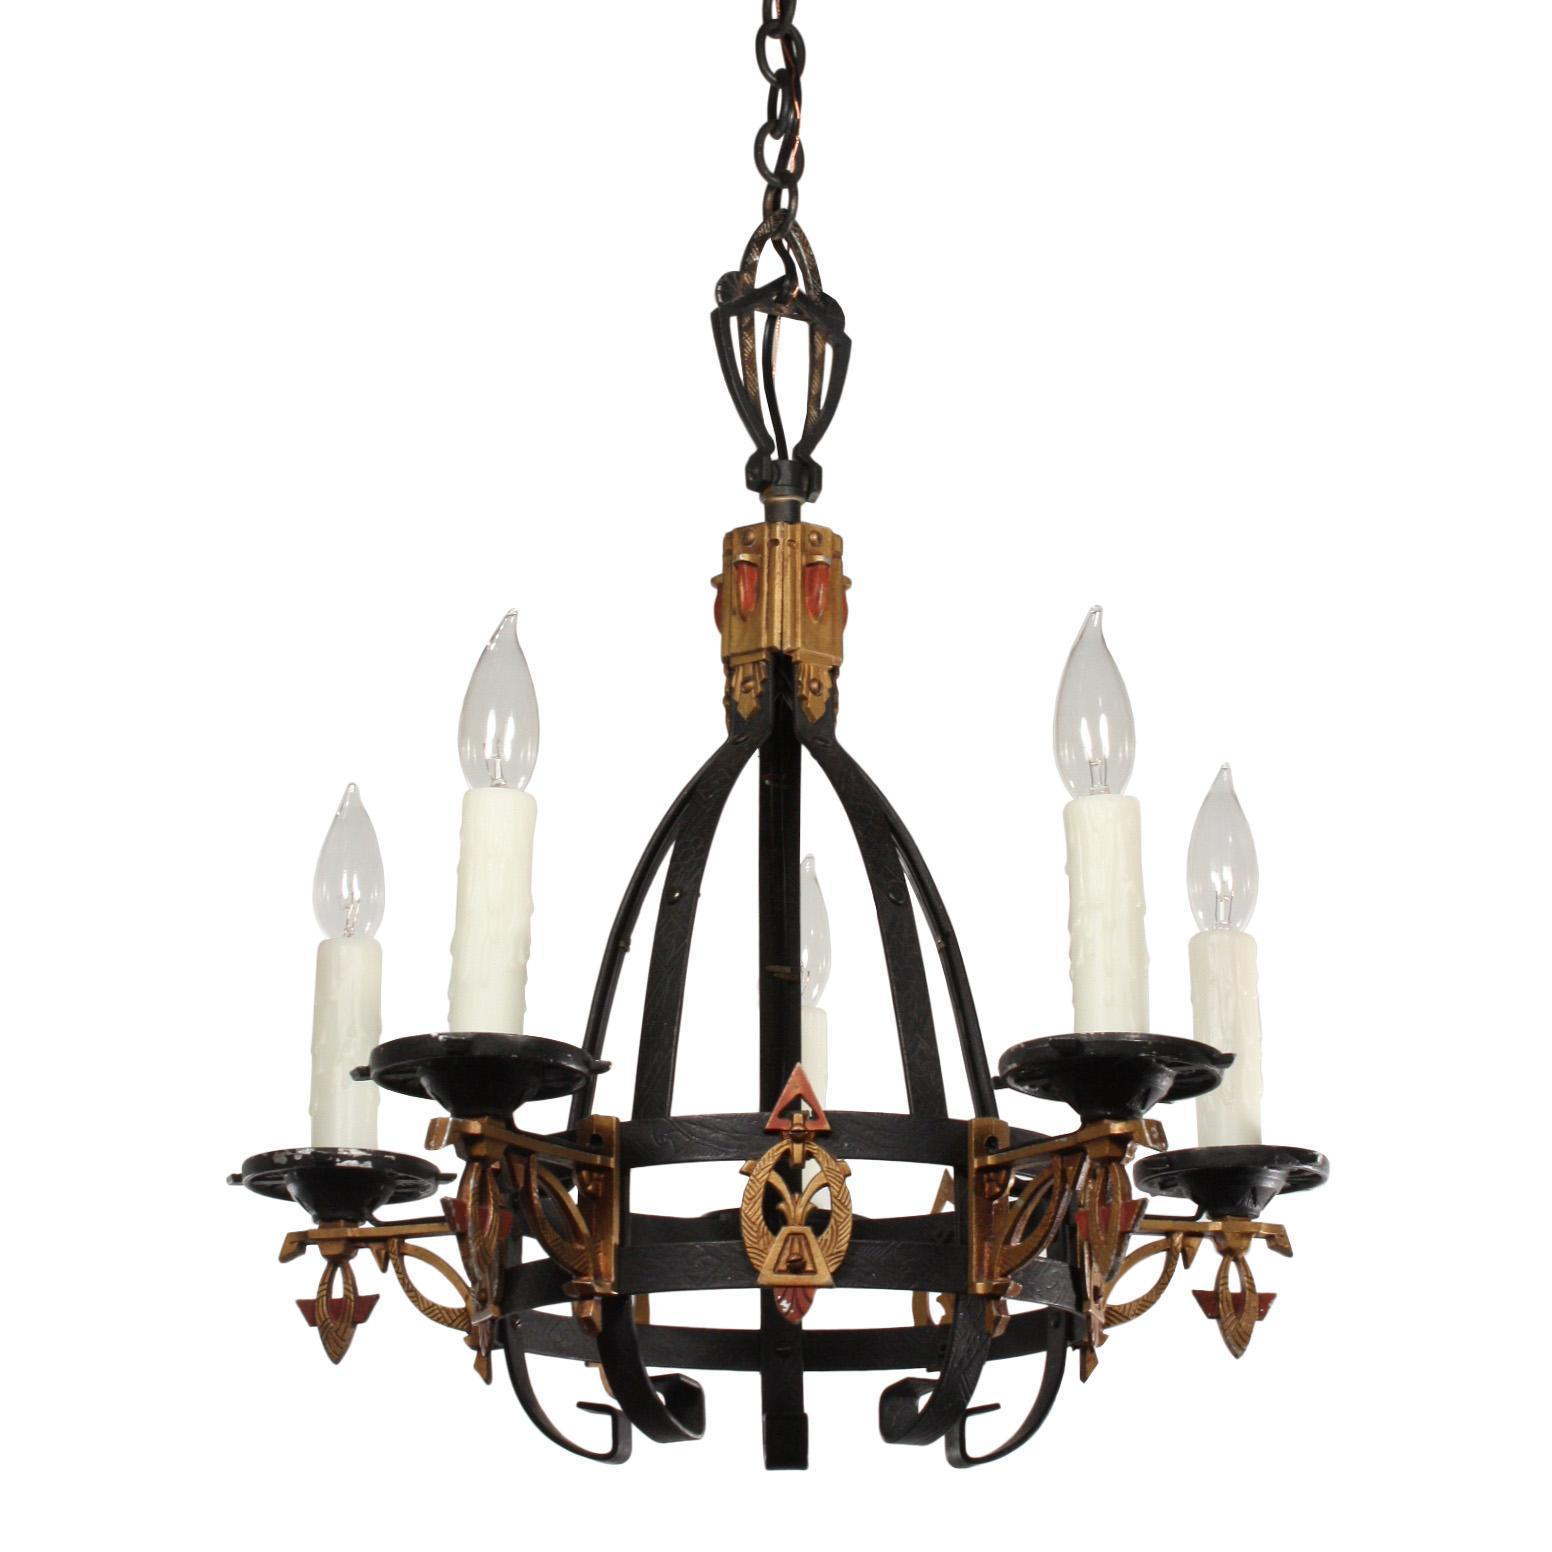 Striking Antique Art Deco Chandelier, Early 1900s